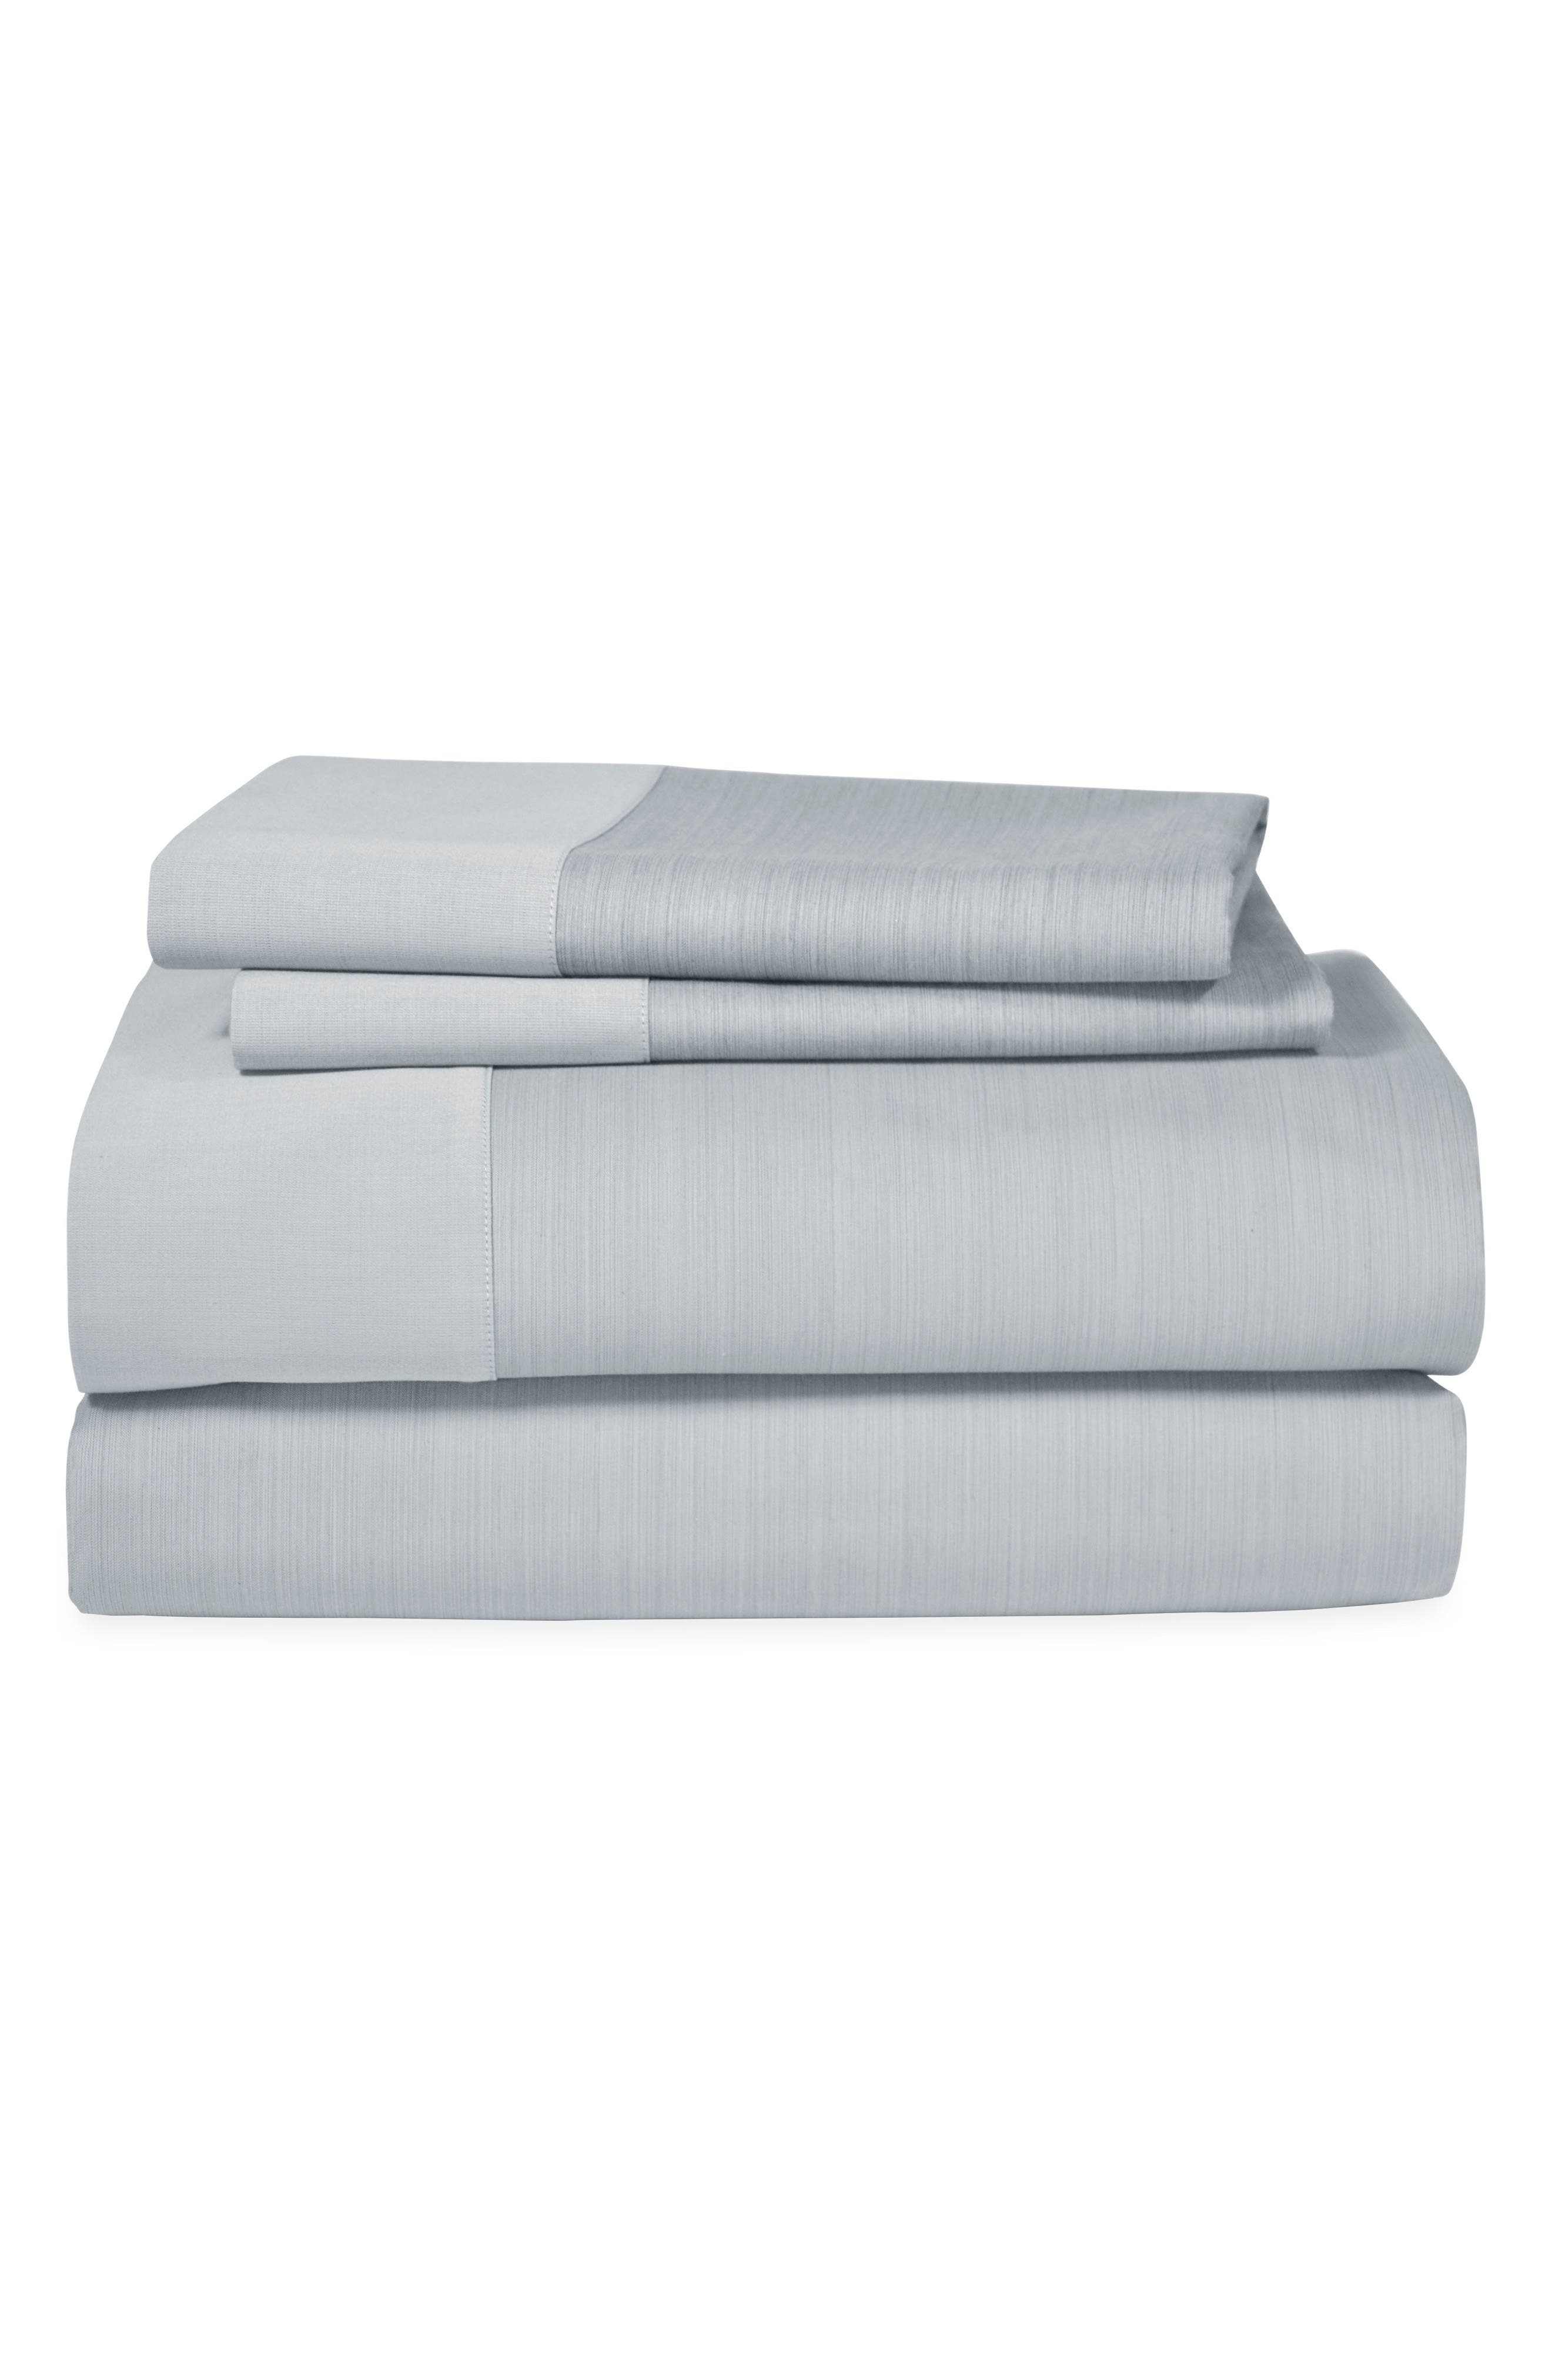 Striated Band 400 Thread Count Fitted Sheet,                         Main,                         color, GRAY